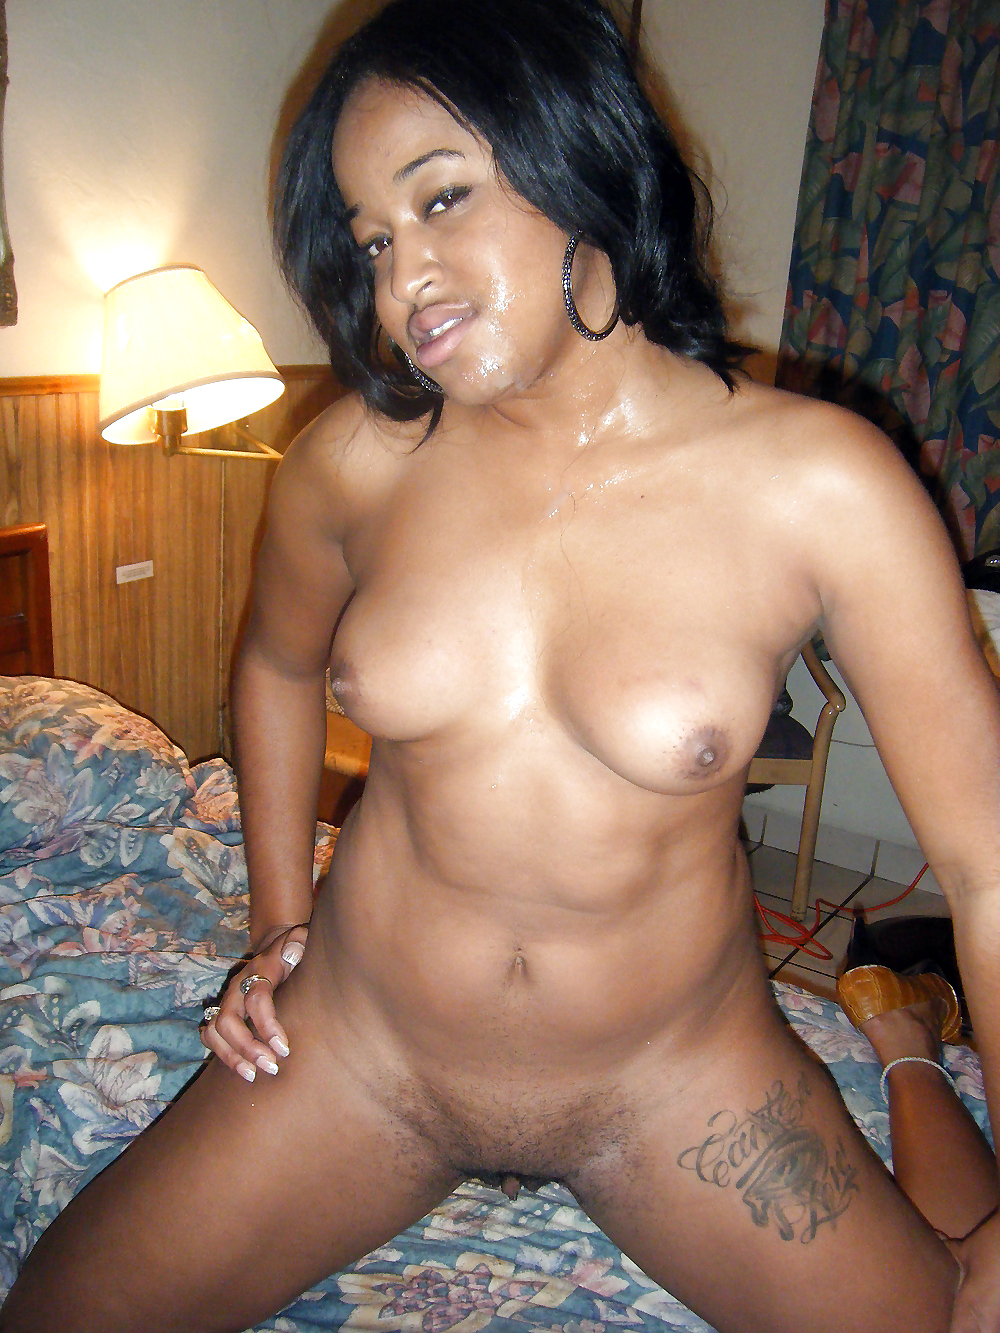 Female nude african